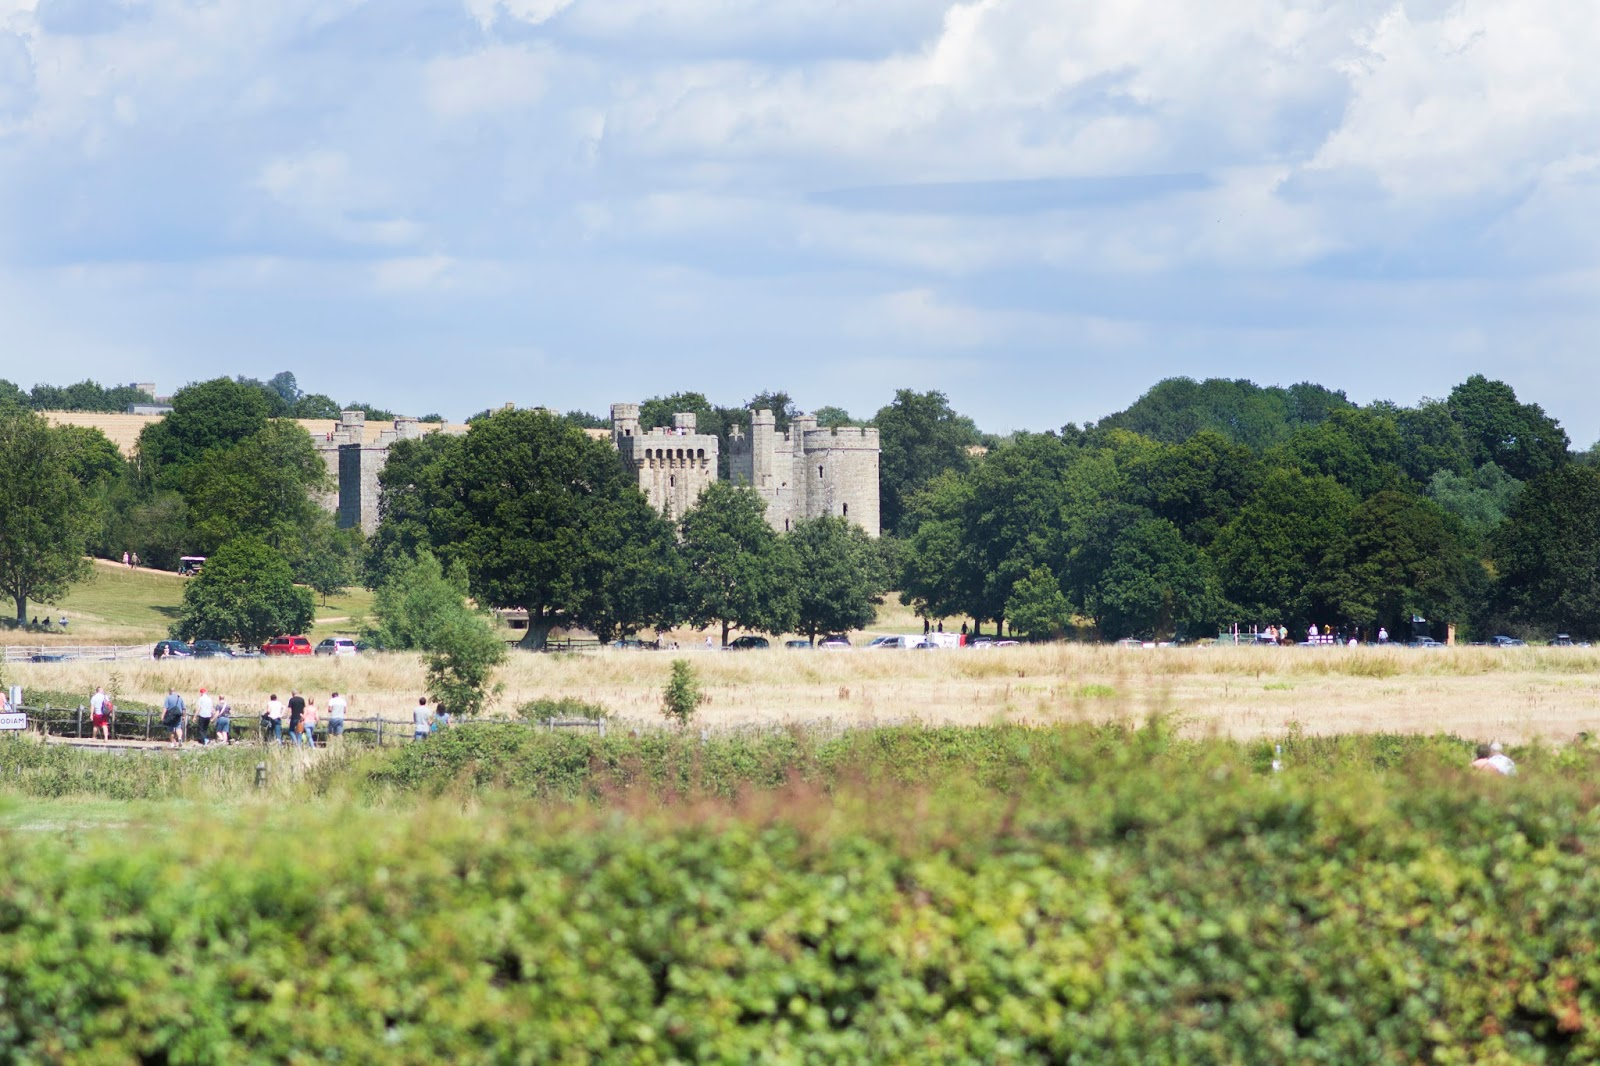 ONCE UPON A CASTLE [VISIT 1066 COUNTRY & BODIAM CASTLE]